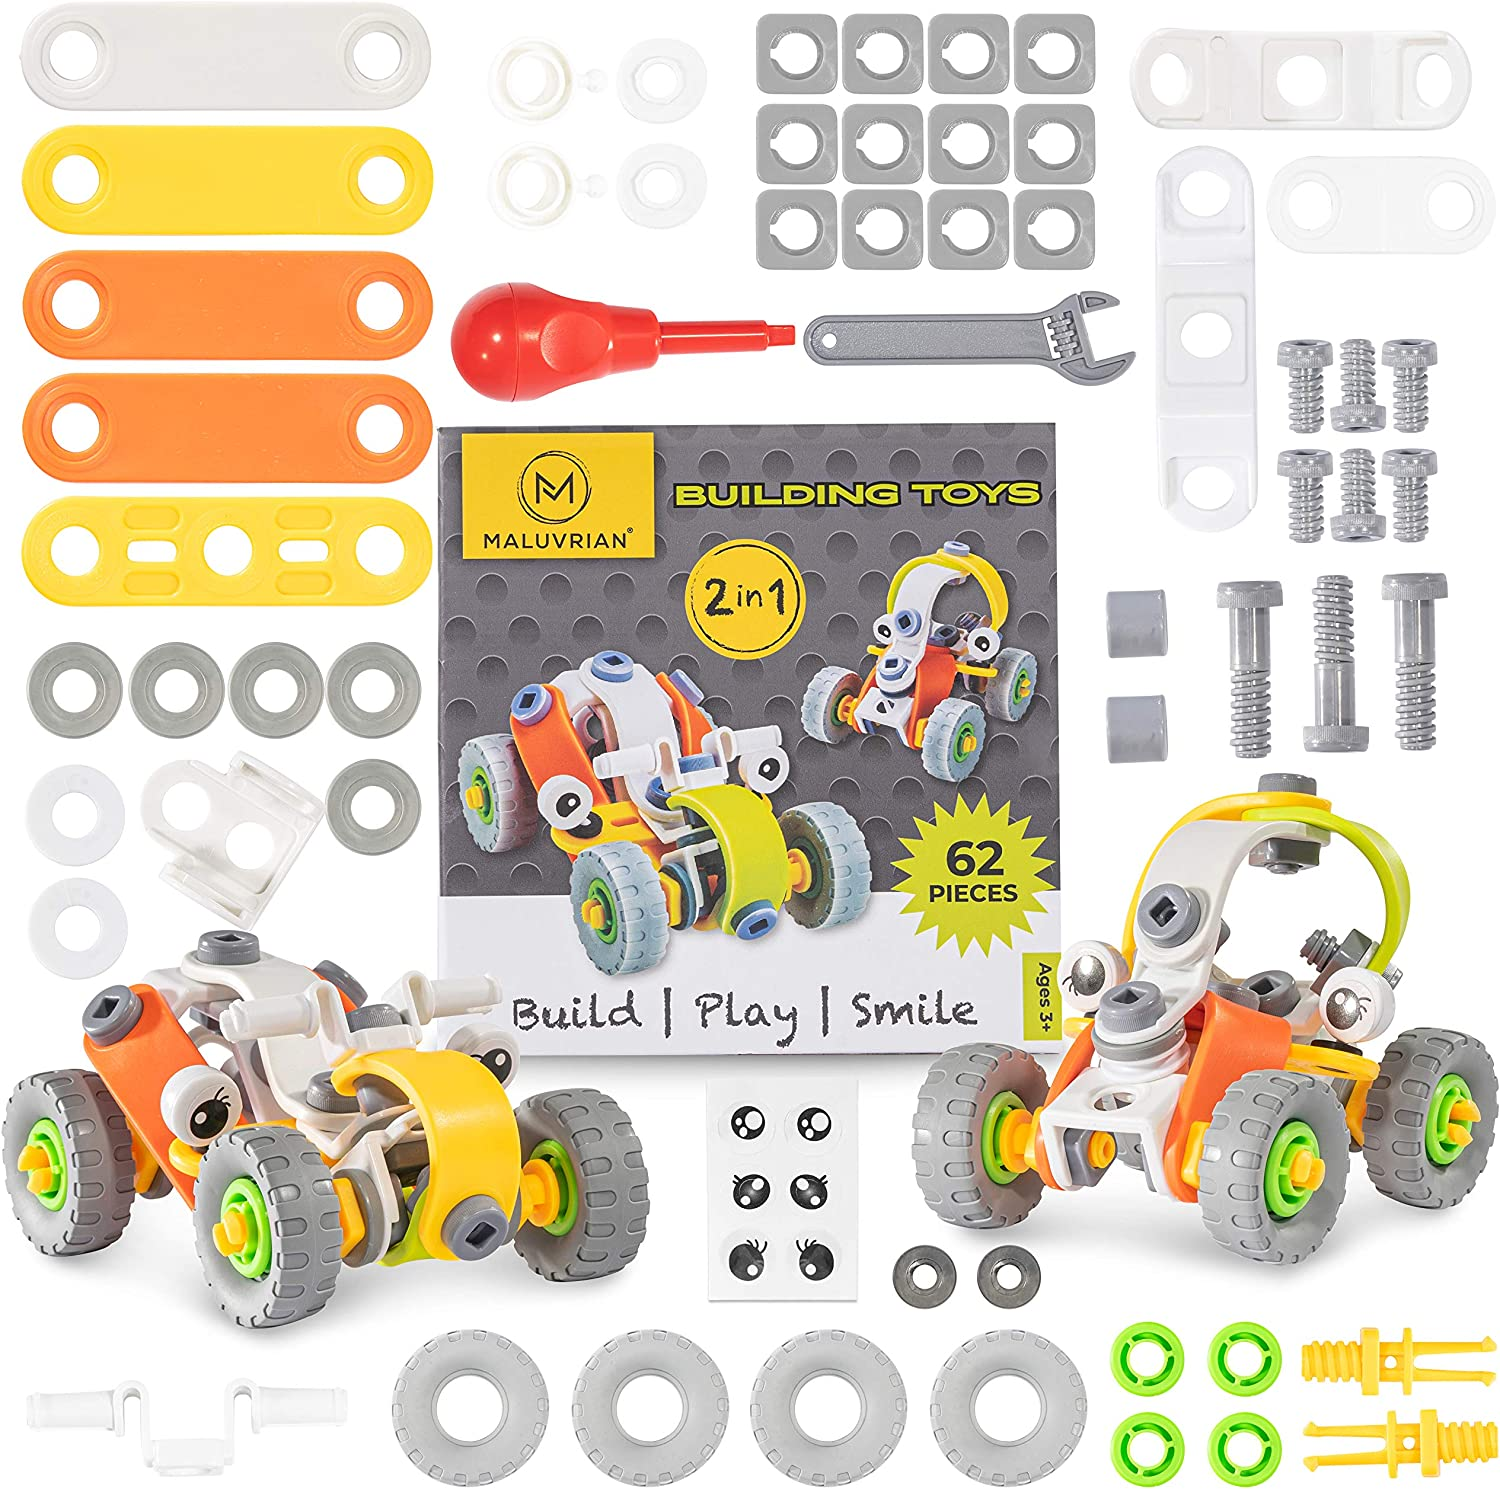 MALUVRIAN Educational Toys STEM Toys Building Toys Engineering Toys Construction Toys for Boys /& Girls Toy Erector Set Kids Build Kits Set for Ages 3 4 5 6 7 8 9 10 Year Old Boys /& Girls 62-Piece